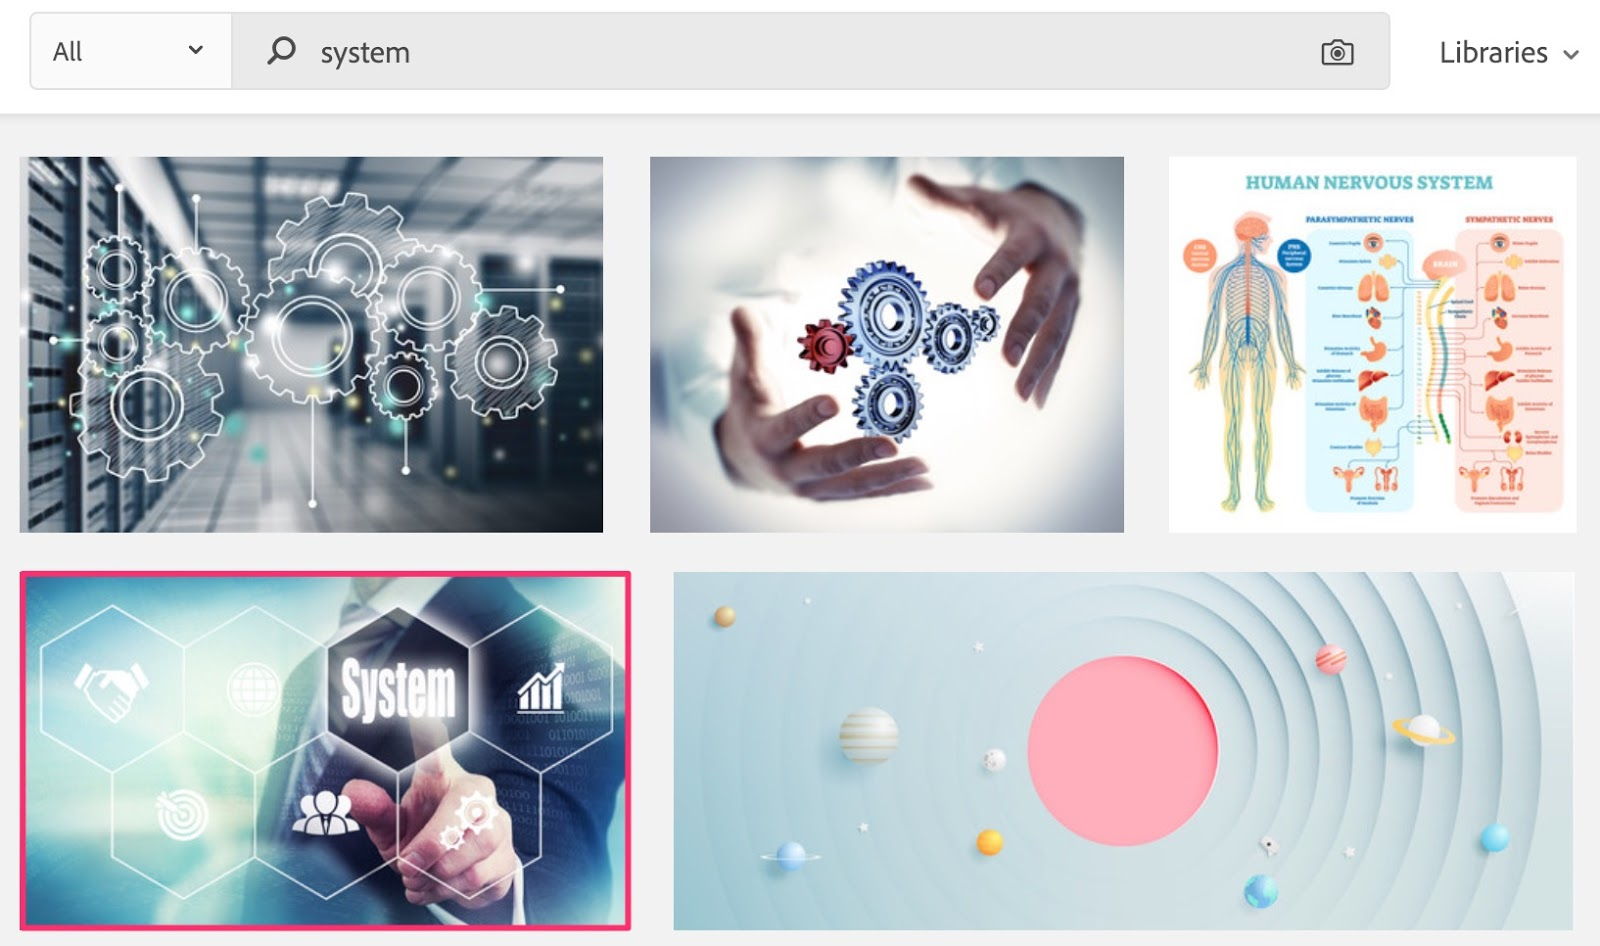 System photos royalty free images graphics vectors videos Adobe Stock 2